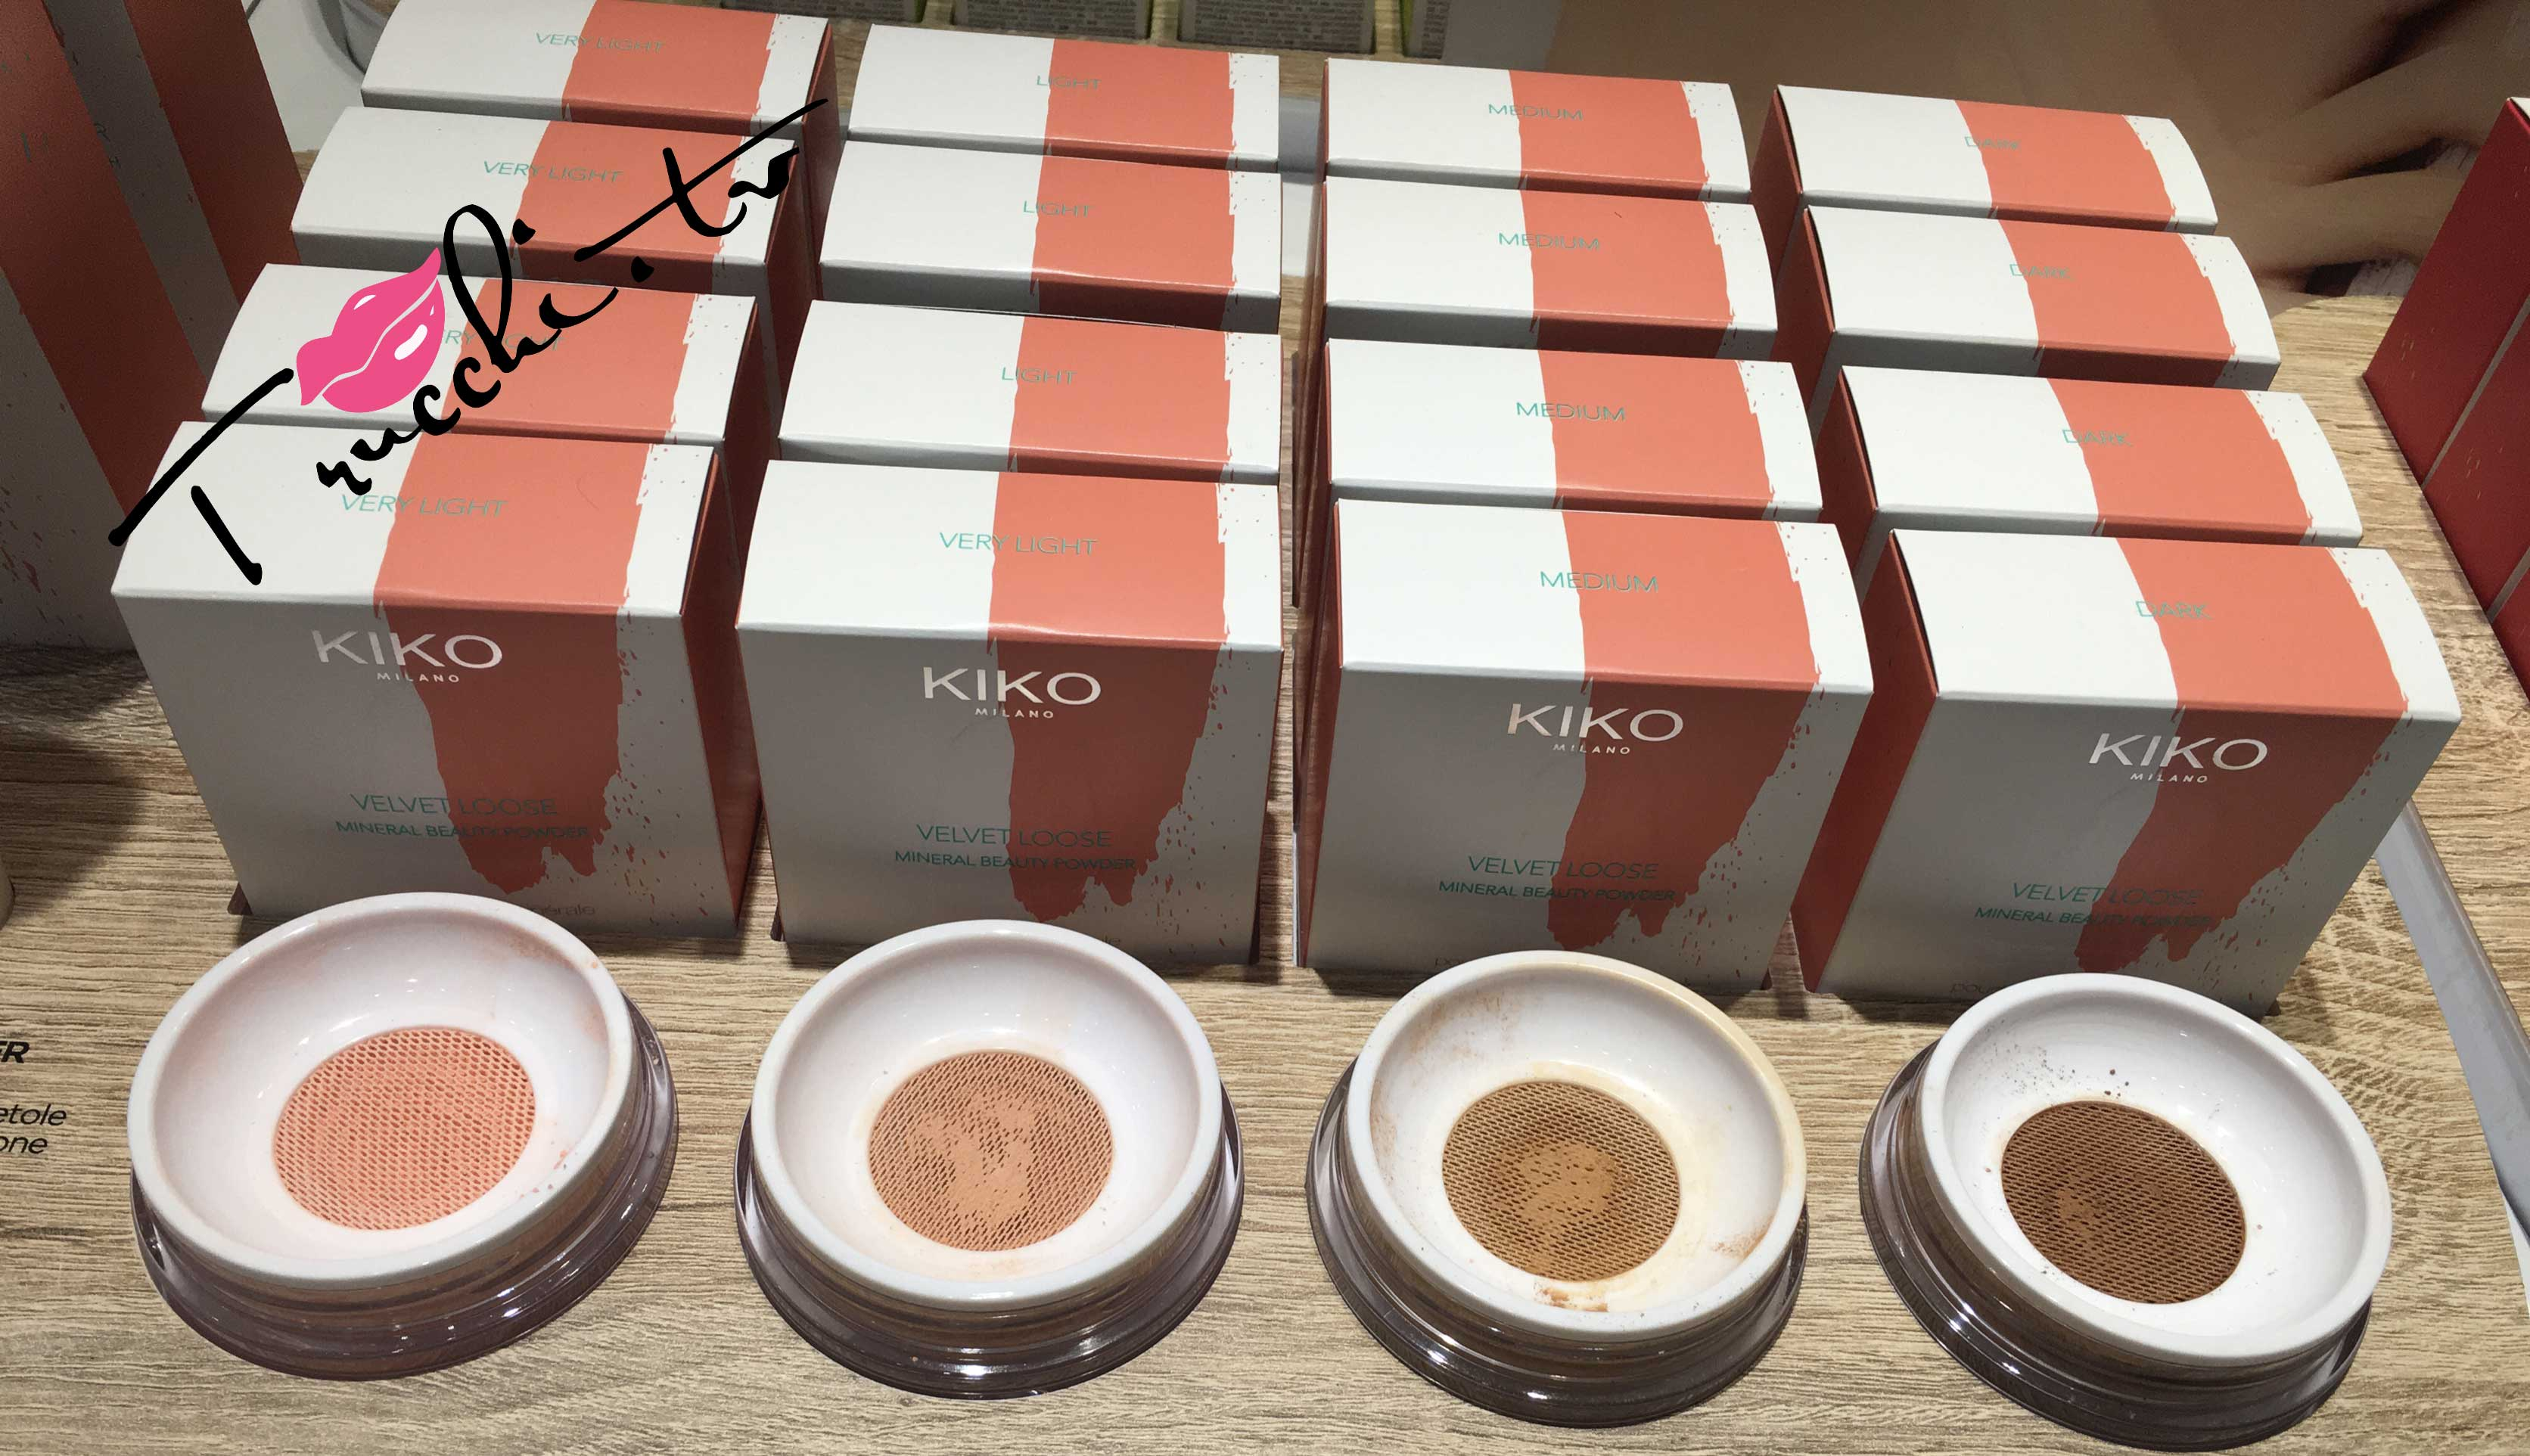 Kiko-The-Artist---Kiko-Velvet-Loose-Mineral-Beauty-Powder-